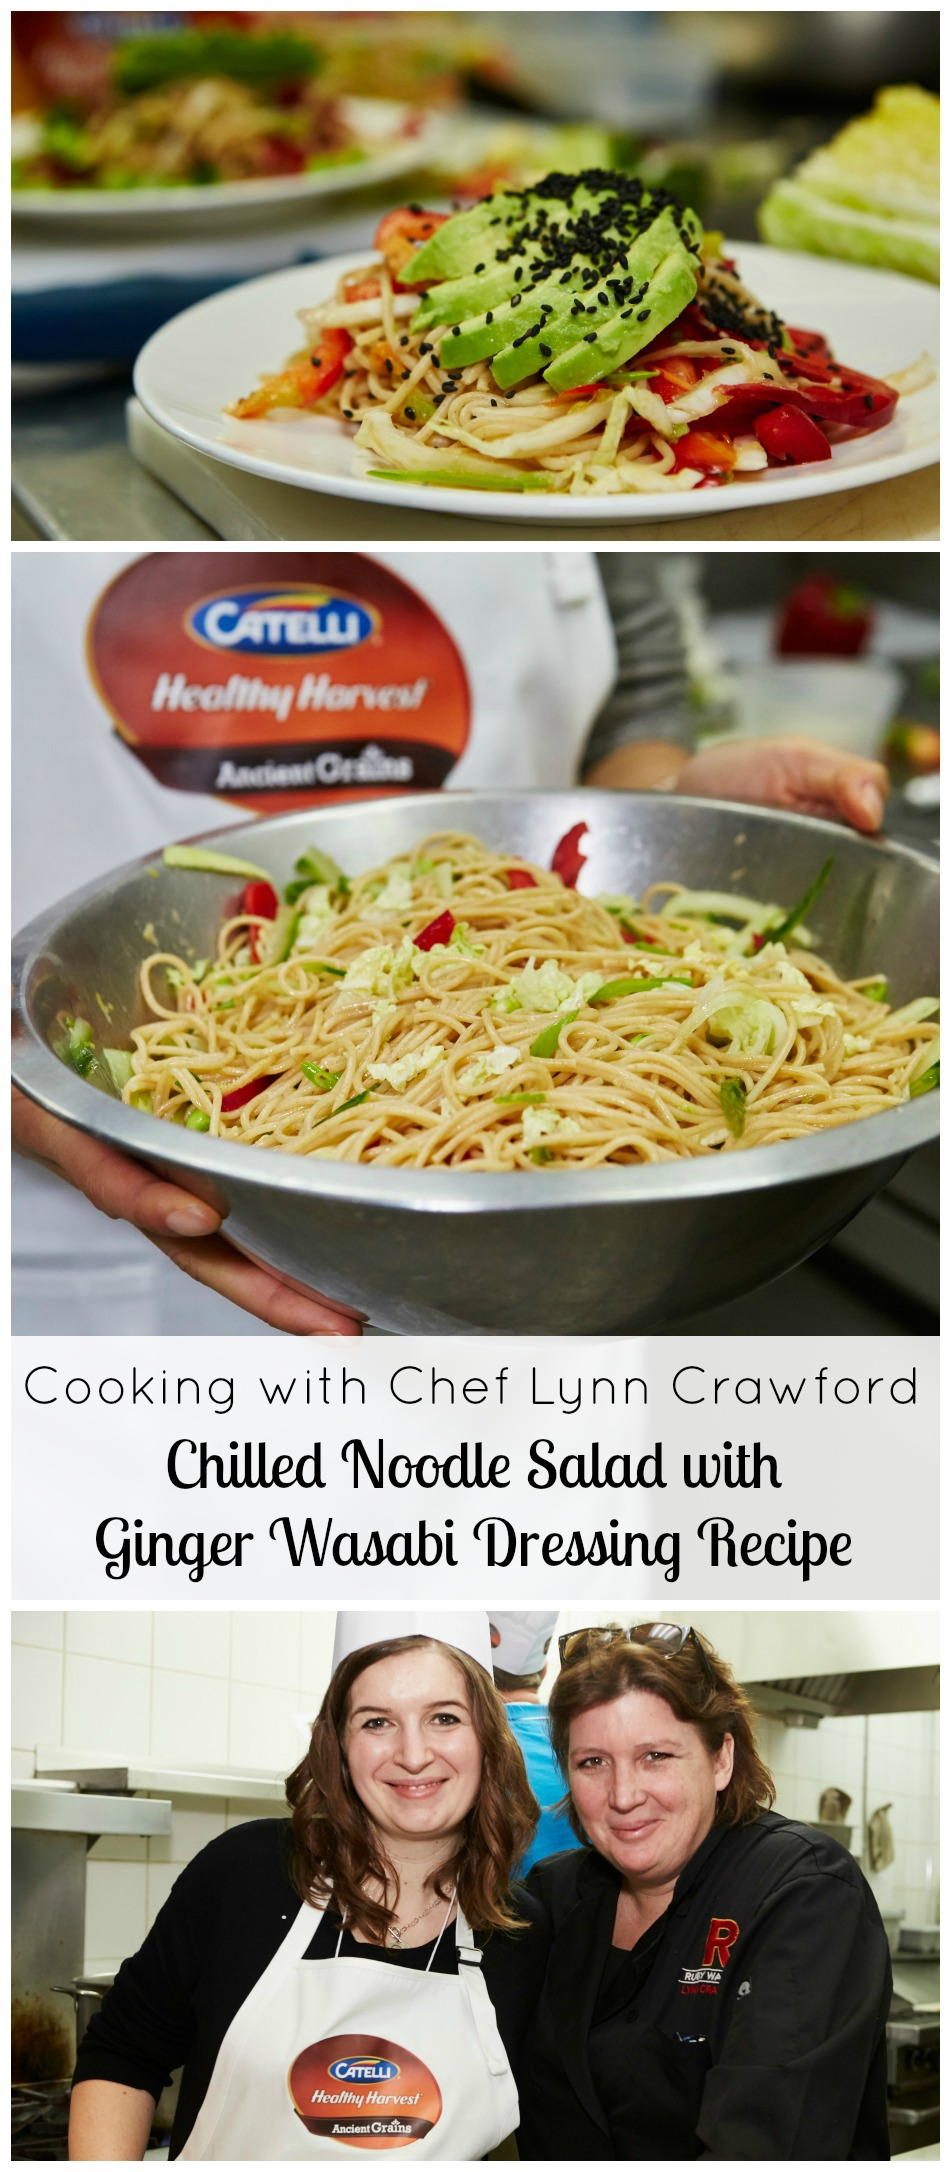 Cooking With Chef Lynn Crawford Chilled Noodle Salad With Ginger Wasabi Dressing Recipe